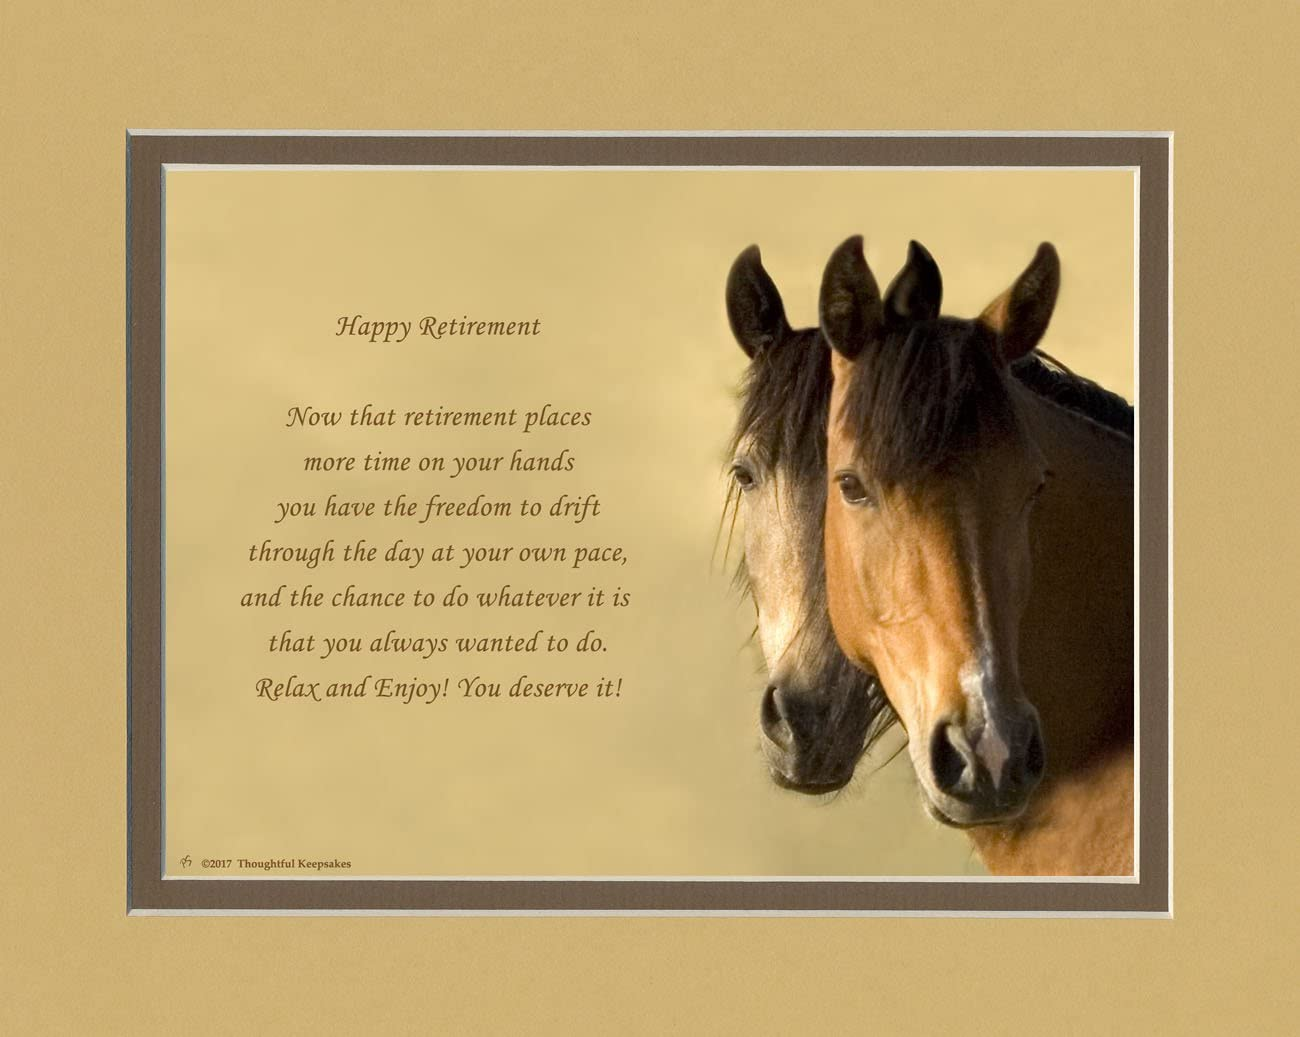 Retirement Gift. Horses Photo with Retiree Best Wishes Poem, 8x10 Double Matted. Unique Retiring Gift for men, women, coworkers, friends or family retirees.